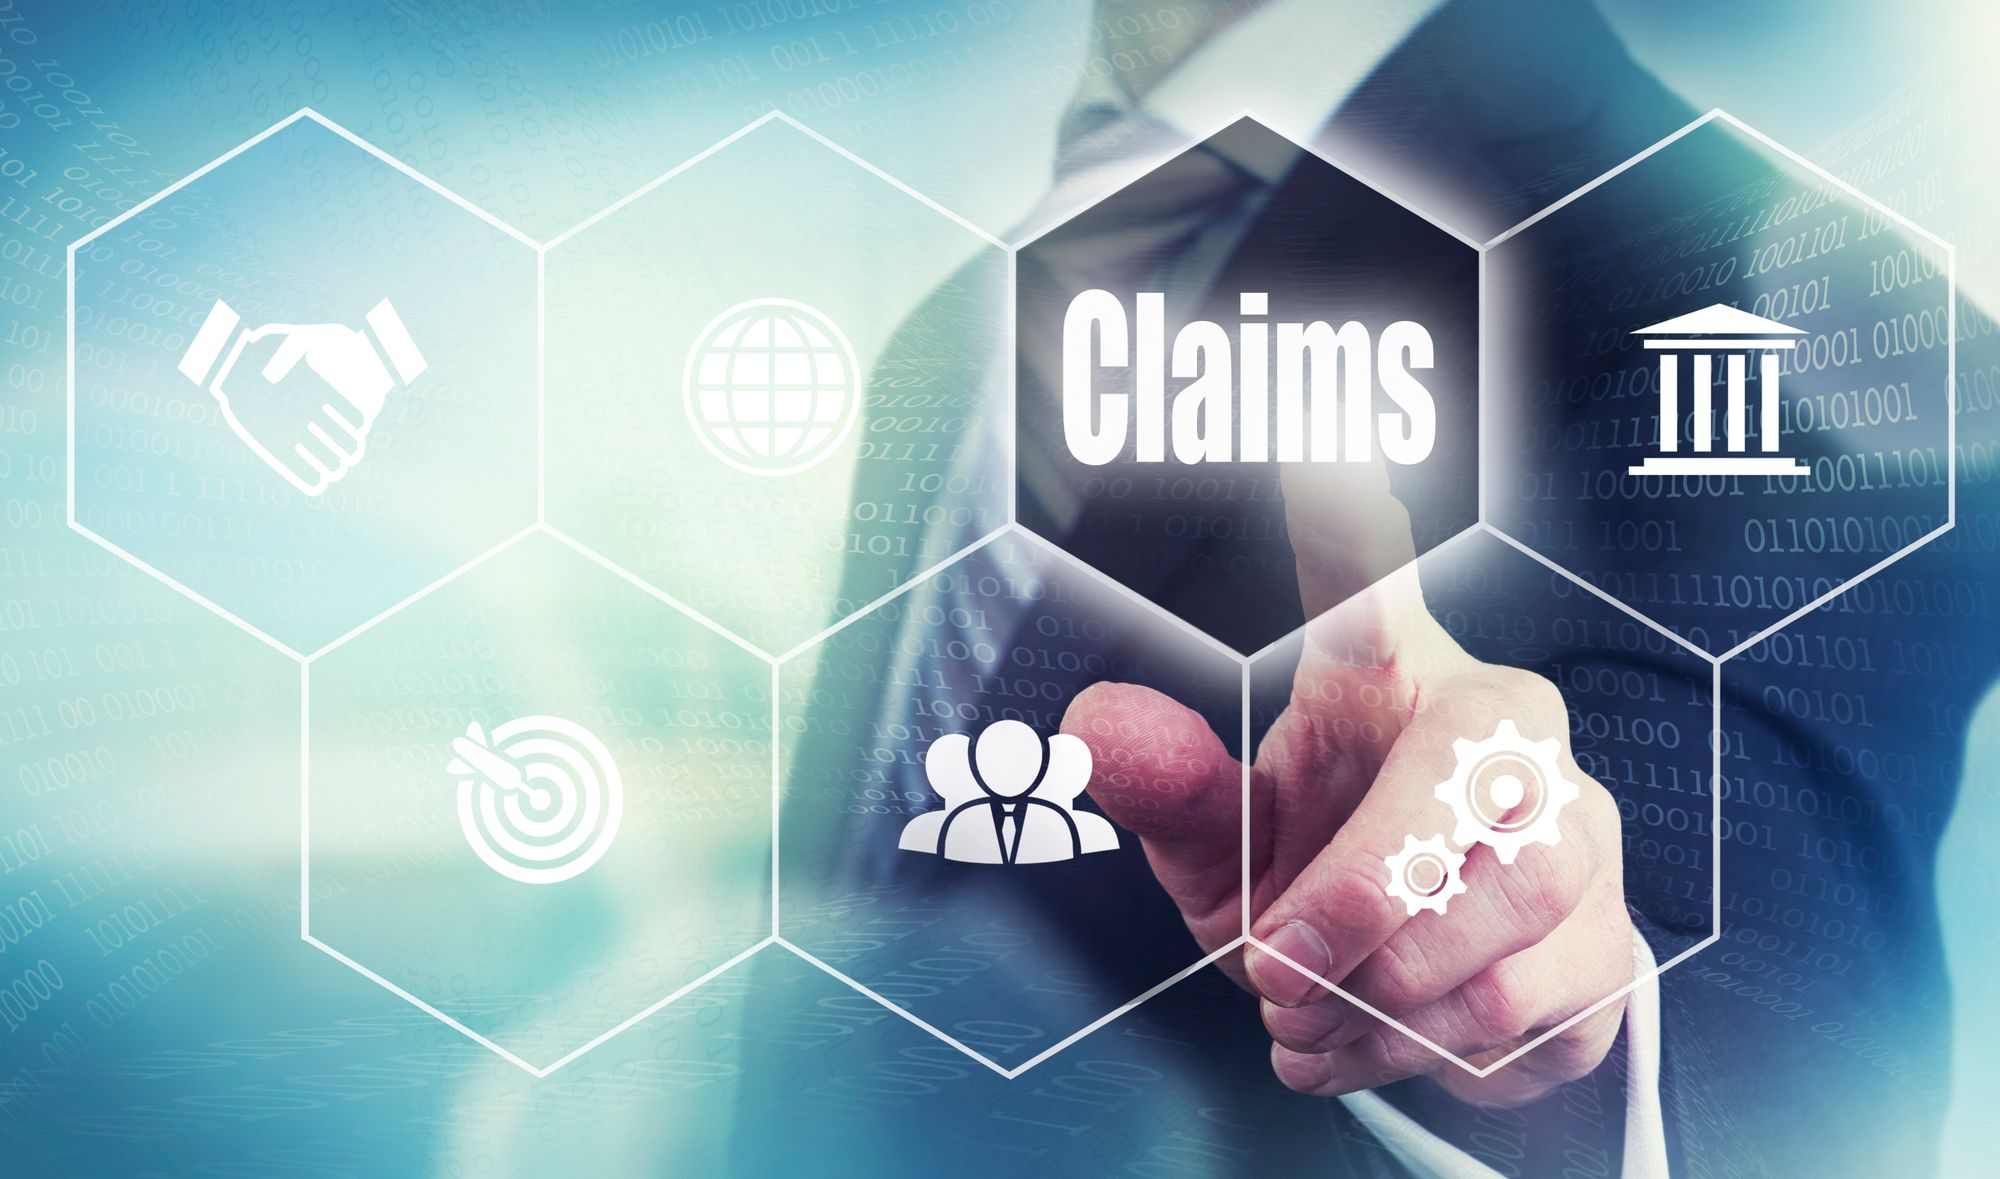 Part III - Misconceptions about Claims in Extended Warranties